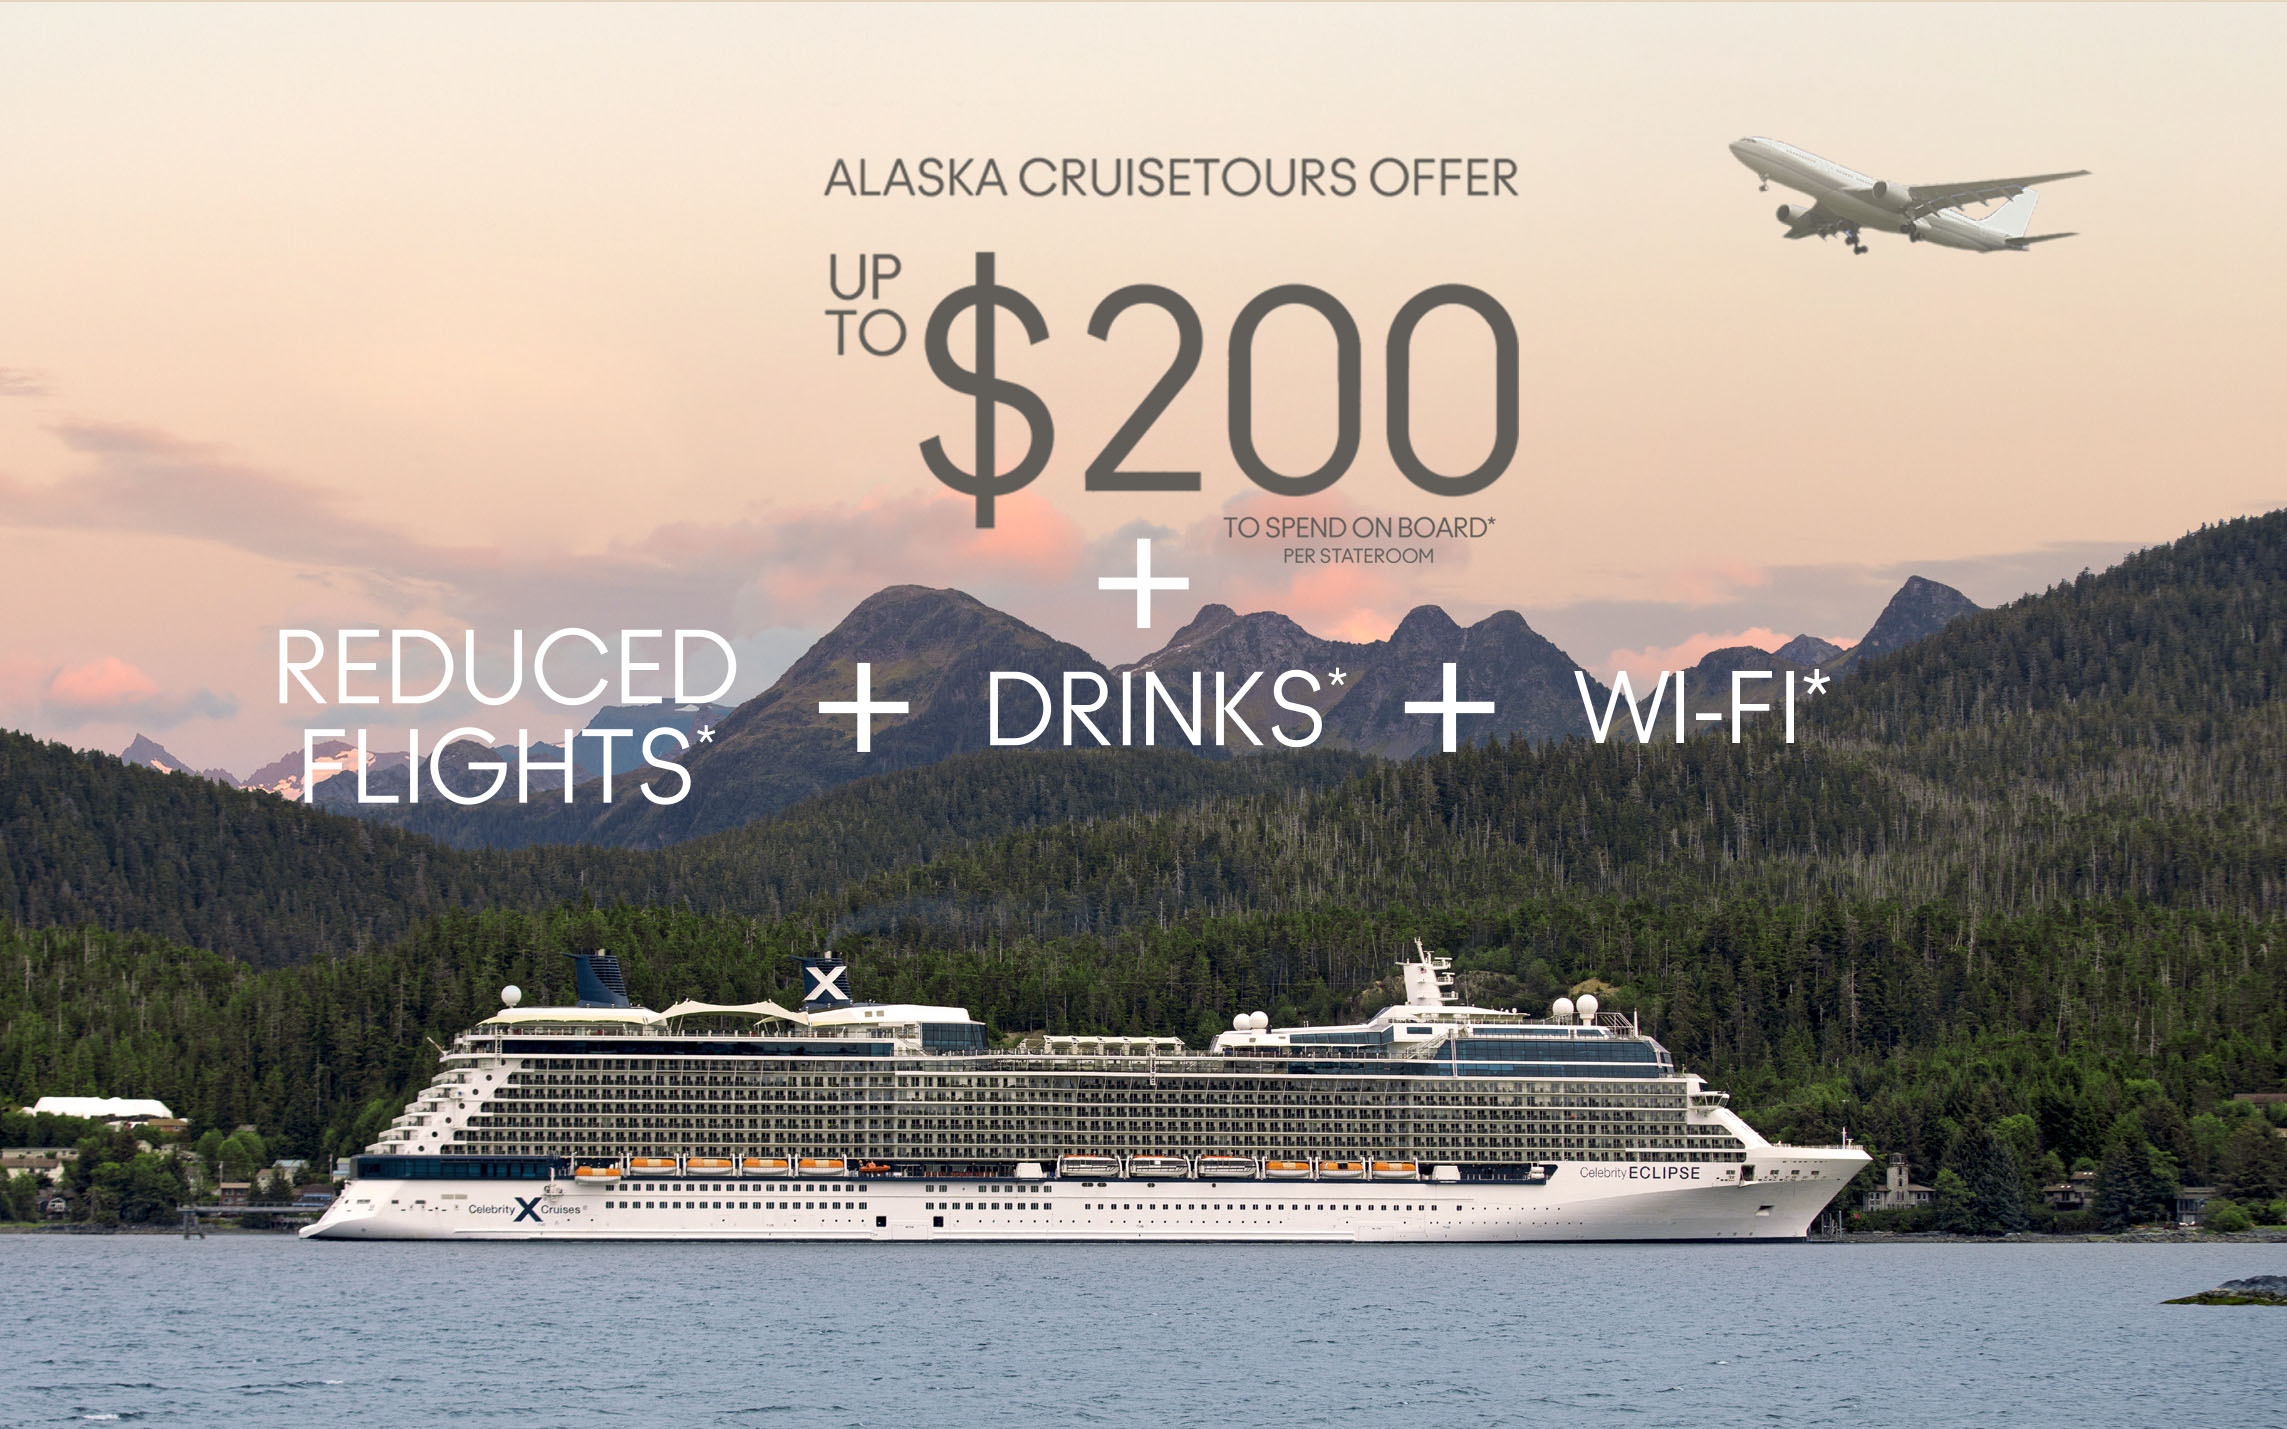 Travel to Alaska with Celebrity Cruises - Receive up to $200 OBC + Reduced Flights + Drinks* + WI-FI*